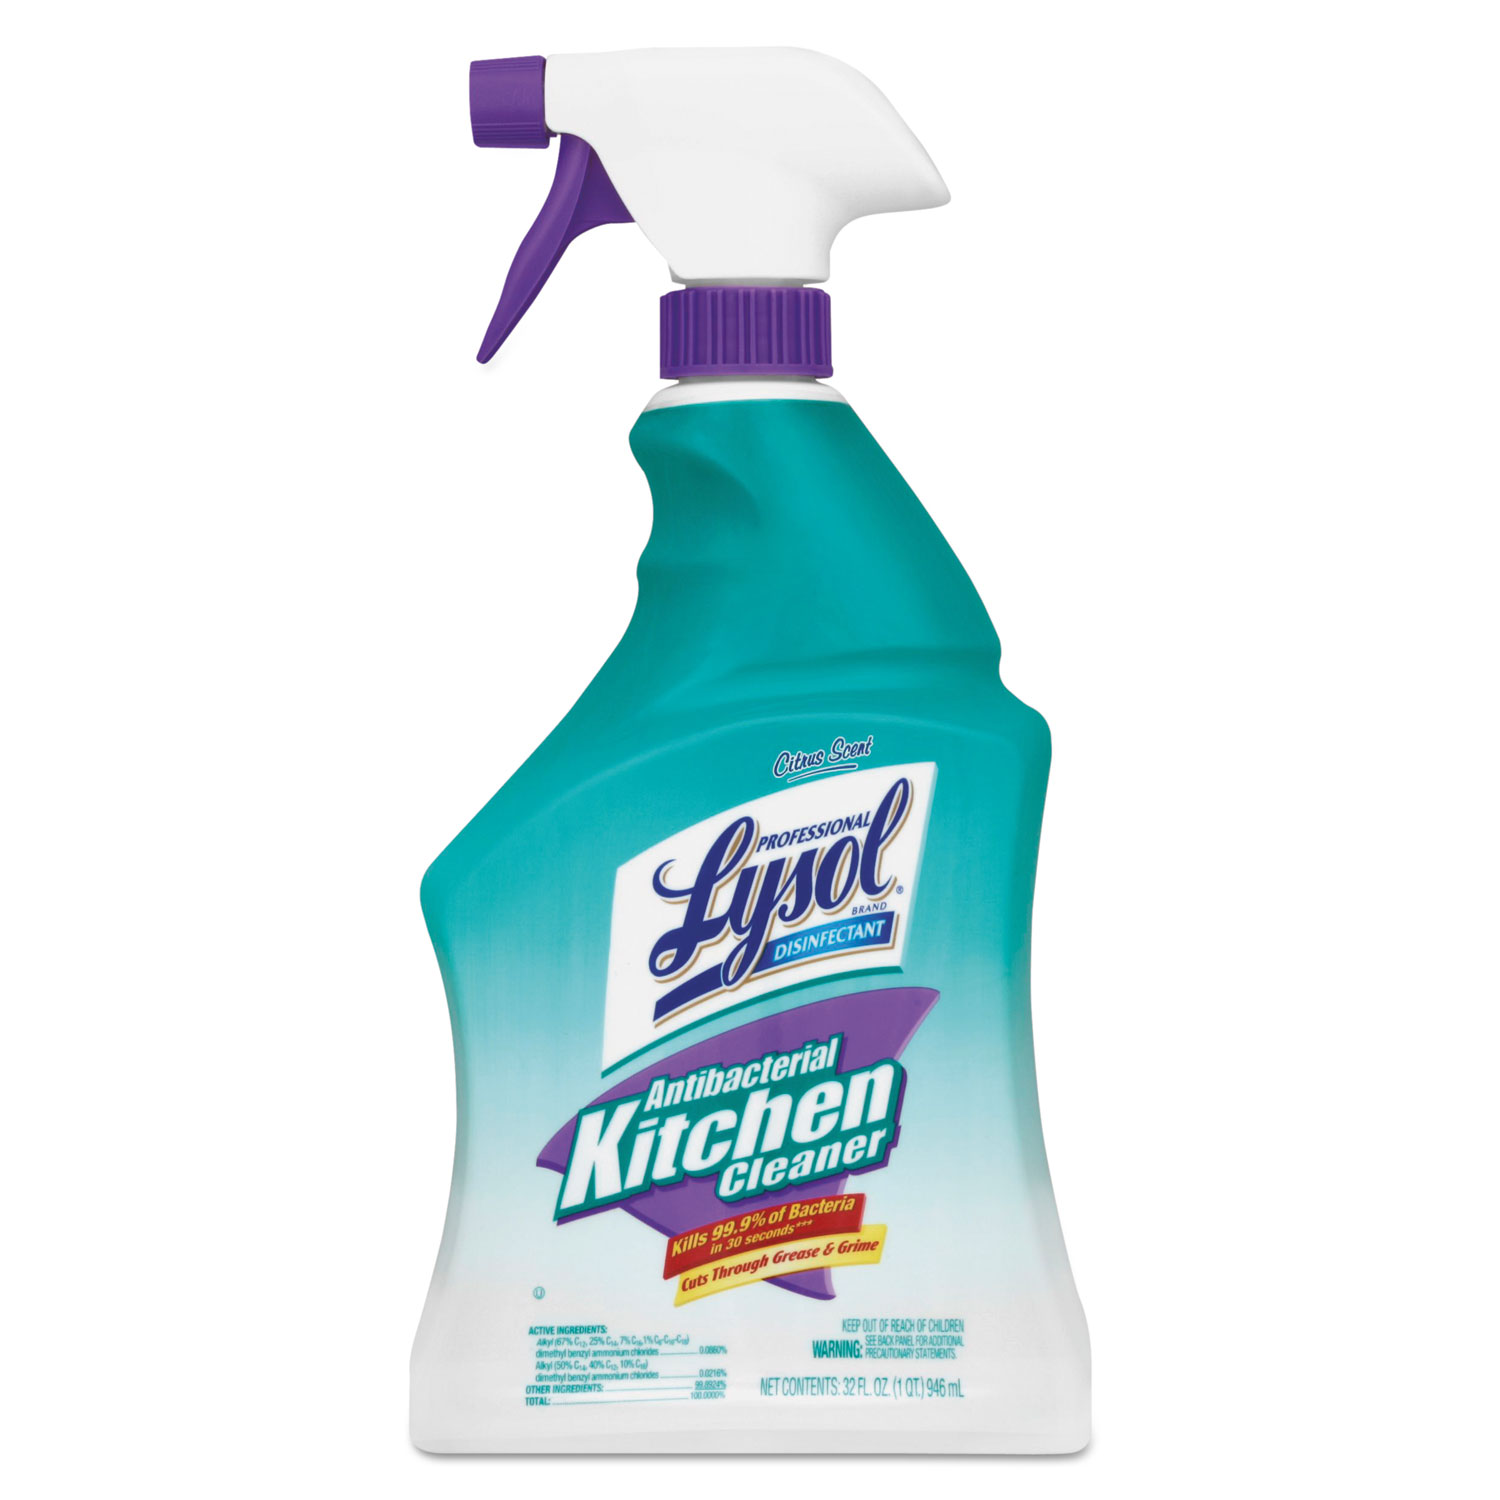 Antibacterial Kitchen Cleaner By Professional LYSOL Brand - Kitchen cleaner